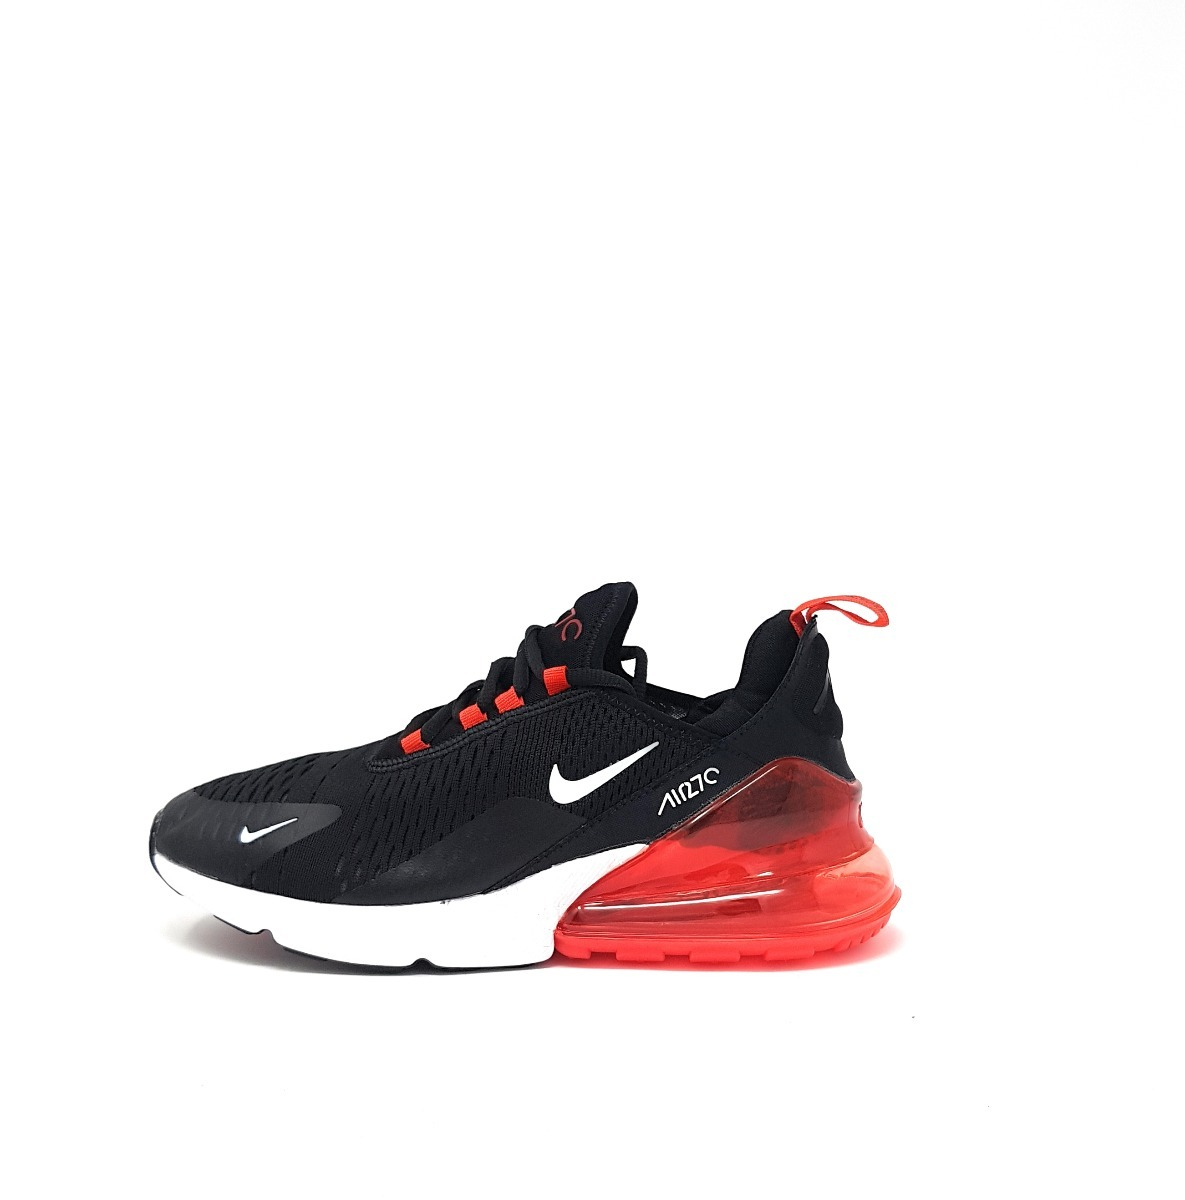 65b313271 ... greece tenis nike air max 270 black red hombre. cargando zoom. ebfcc  c9a6c